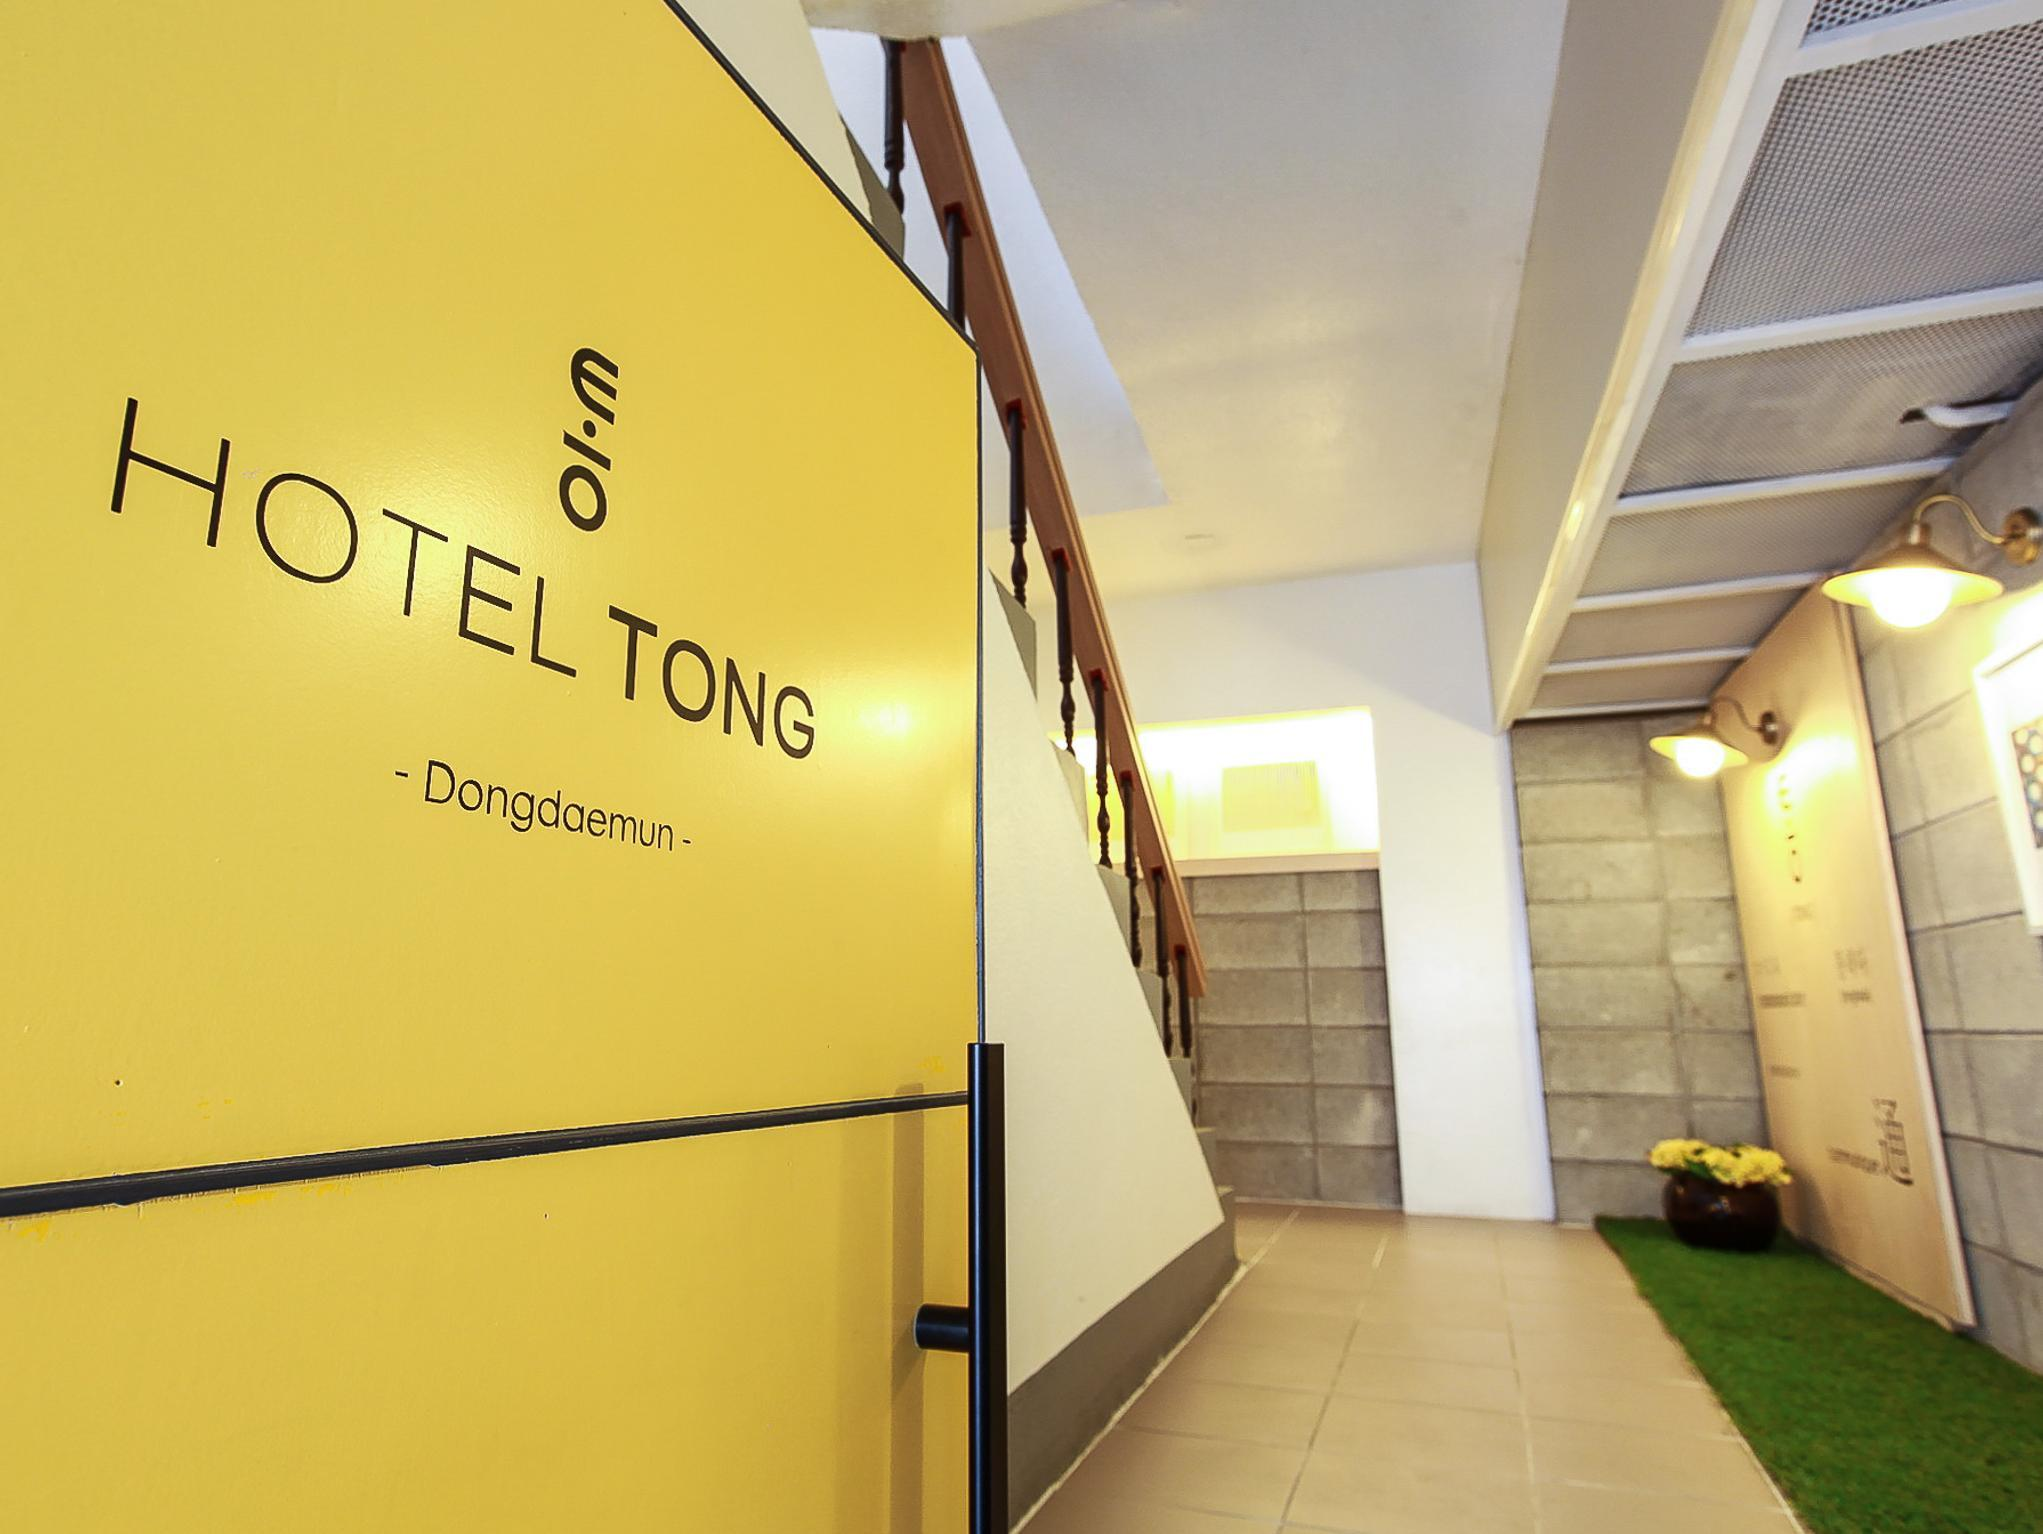 Goodstay Hotel Tong Seoul Dongdaemun - Hotels and Accommodation in South Korea, Asia